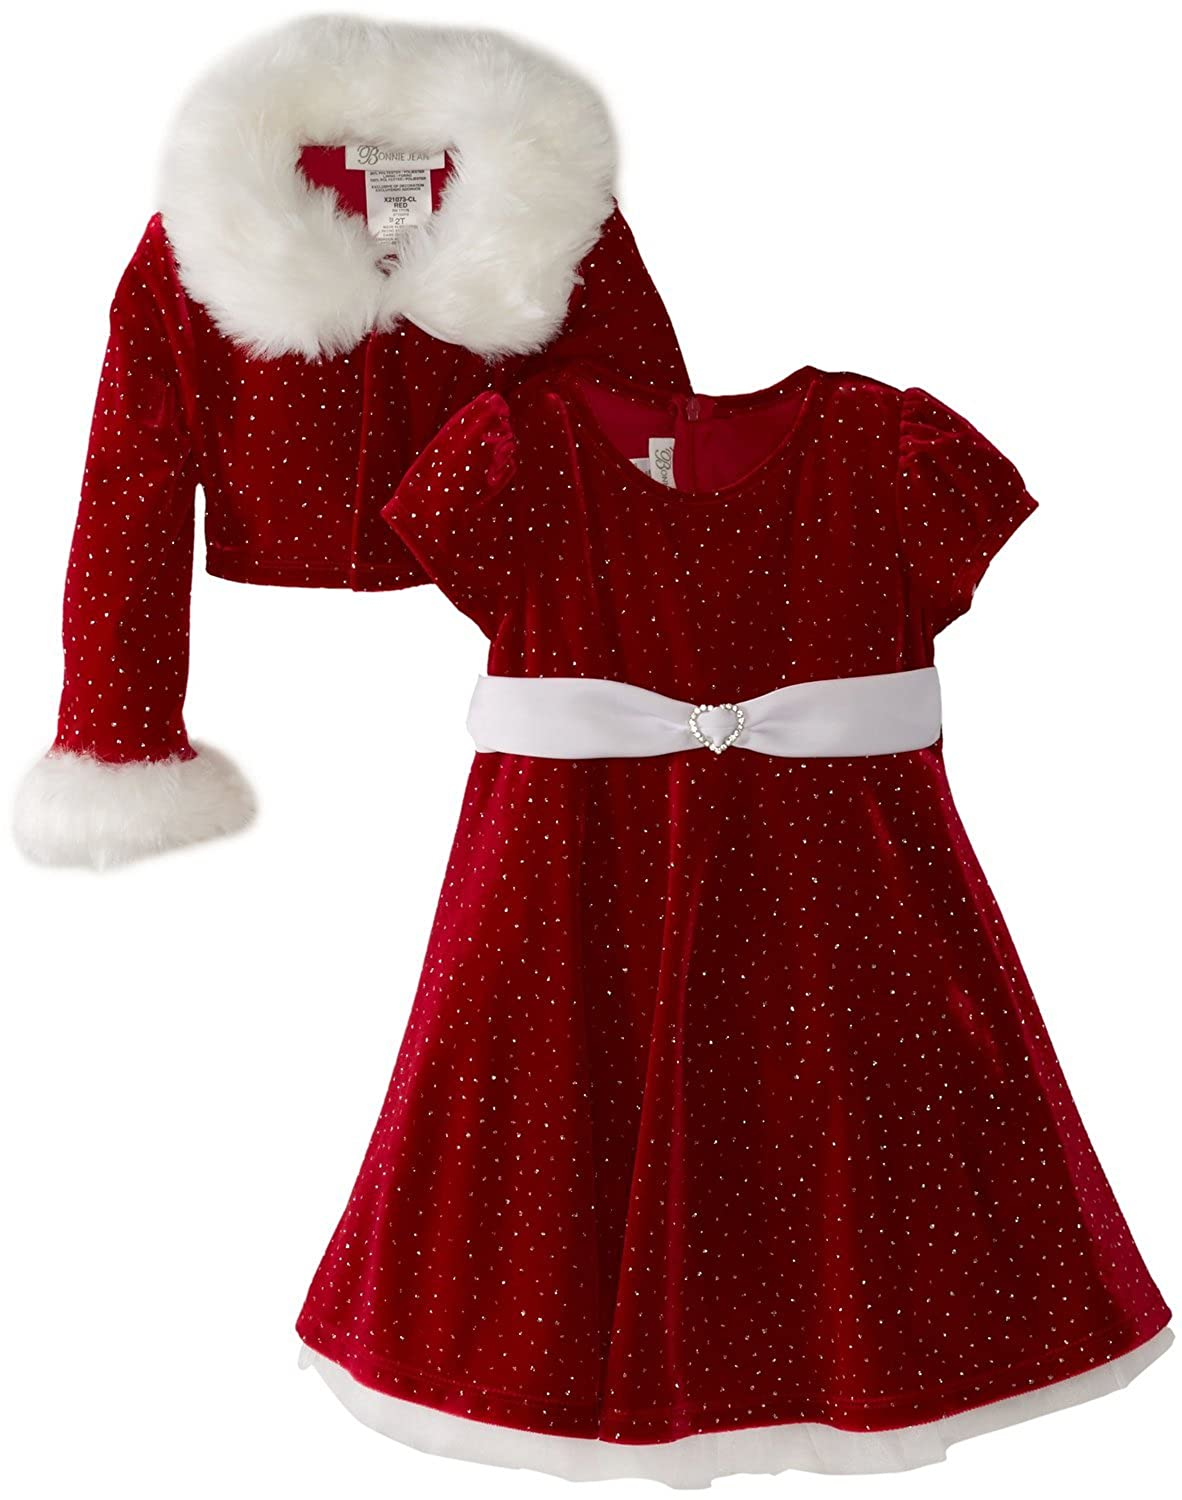 Kids 1950s Clothing & Costumes: Girls, Boys, Toddlers Bonnie Jean Girls Christmas Dress Velvet Sparkle Dress with Jacket $46.98 AT vintagedancer.com